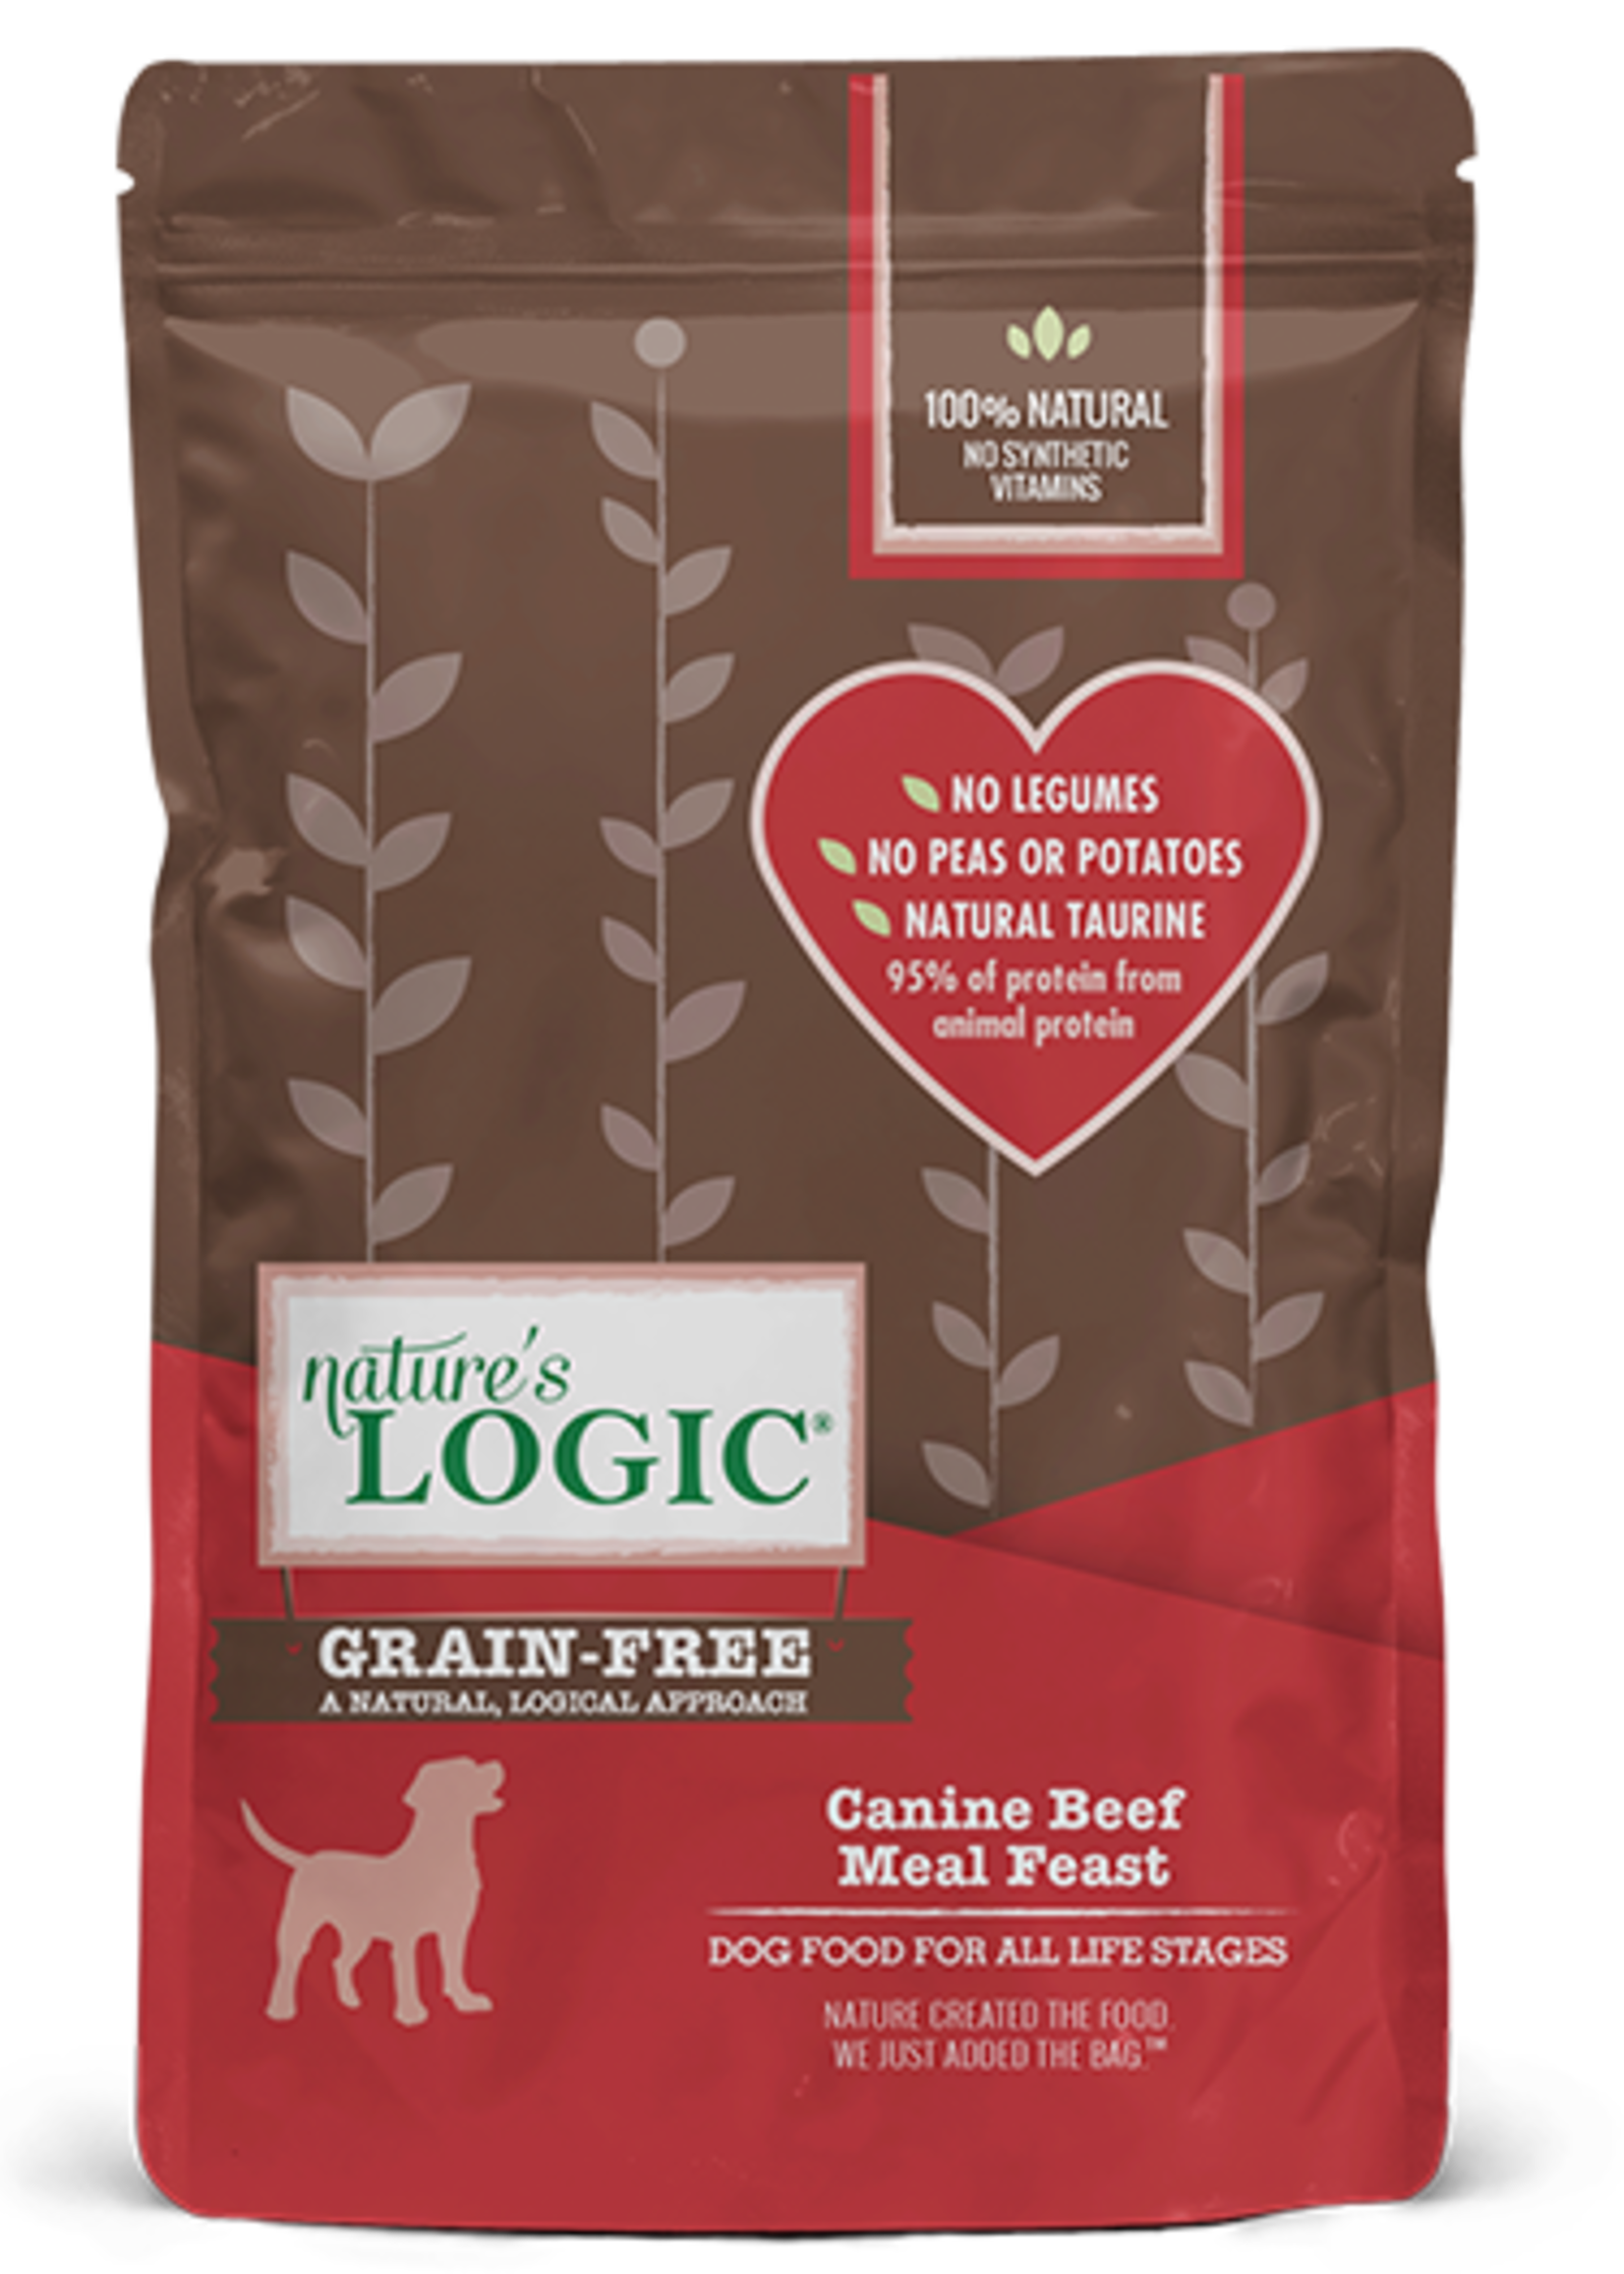 Nature's Logic Nature's Logic Canine Beef Meal Feast Grain-Free Dry Dog Food 4.4lbs